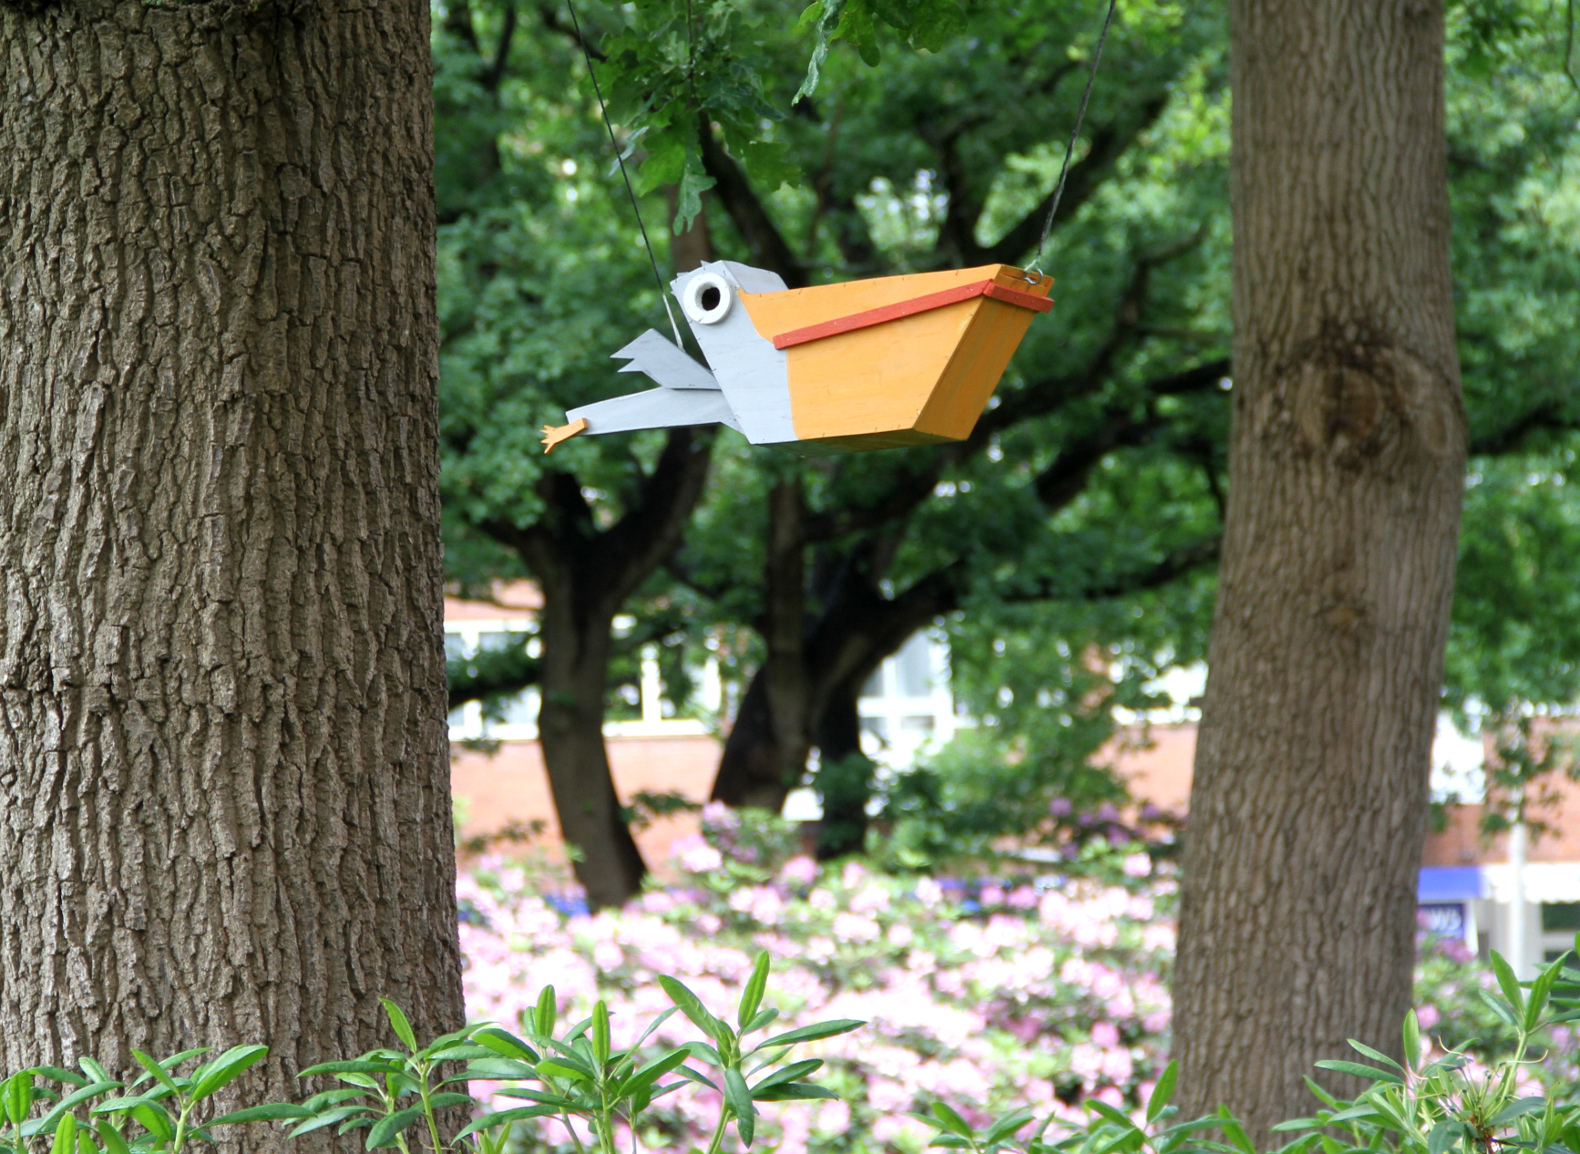 Fabulous Artist Creates Thousands Of Urban Birdhouses Out Of Recycled Download Free Architecture Designs Scobabritishbridgeorg